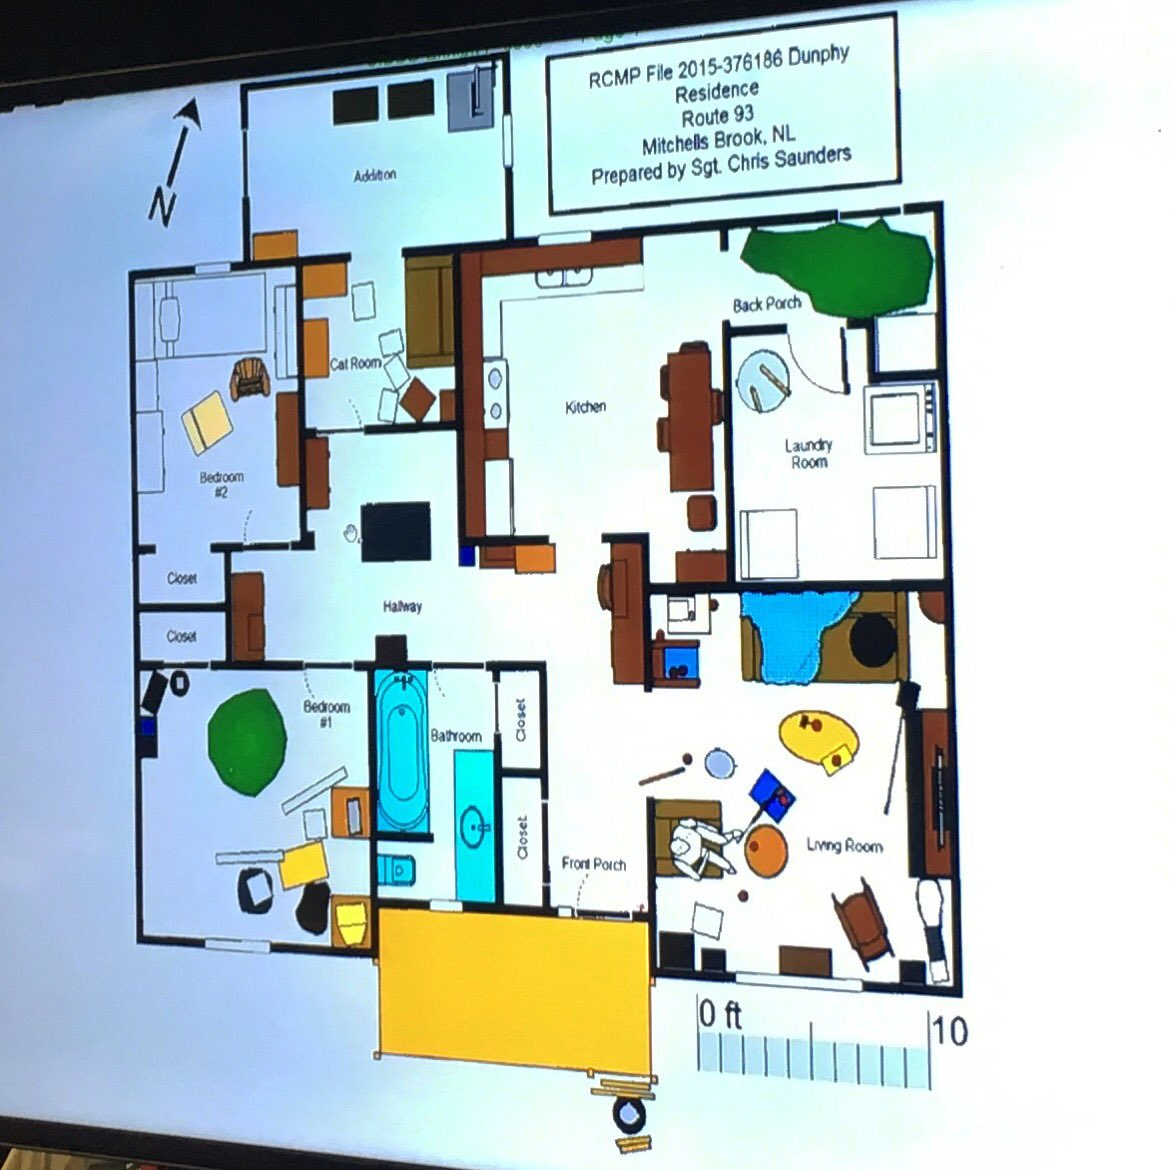 Mark Quinn On Twitter This Is The Floor Plan Of Don Dunphy S House In Mitchells Brook Enter As Evidence At Inquiry Dunphy